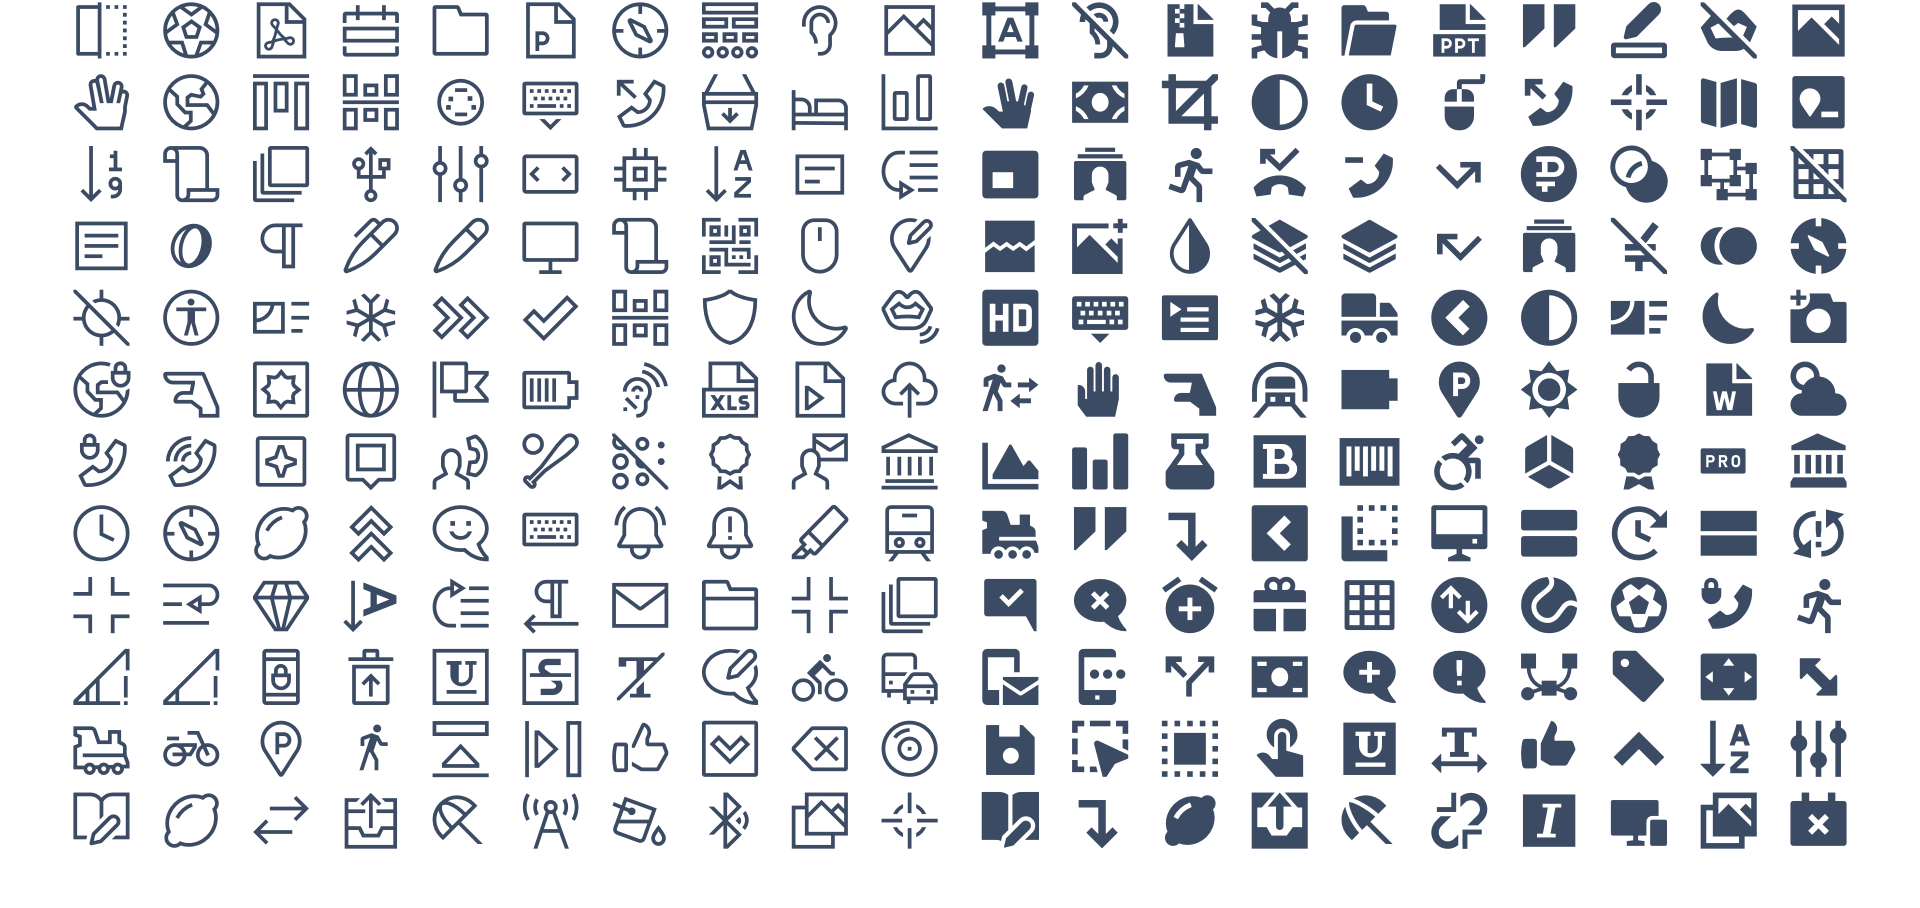 Free icons - SVG, PNG, JavaScript & Icon Font - Over 1500